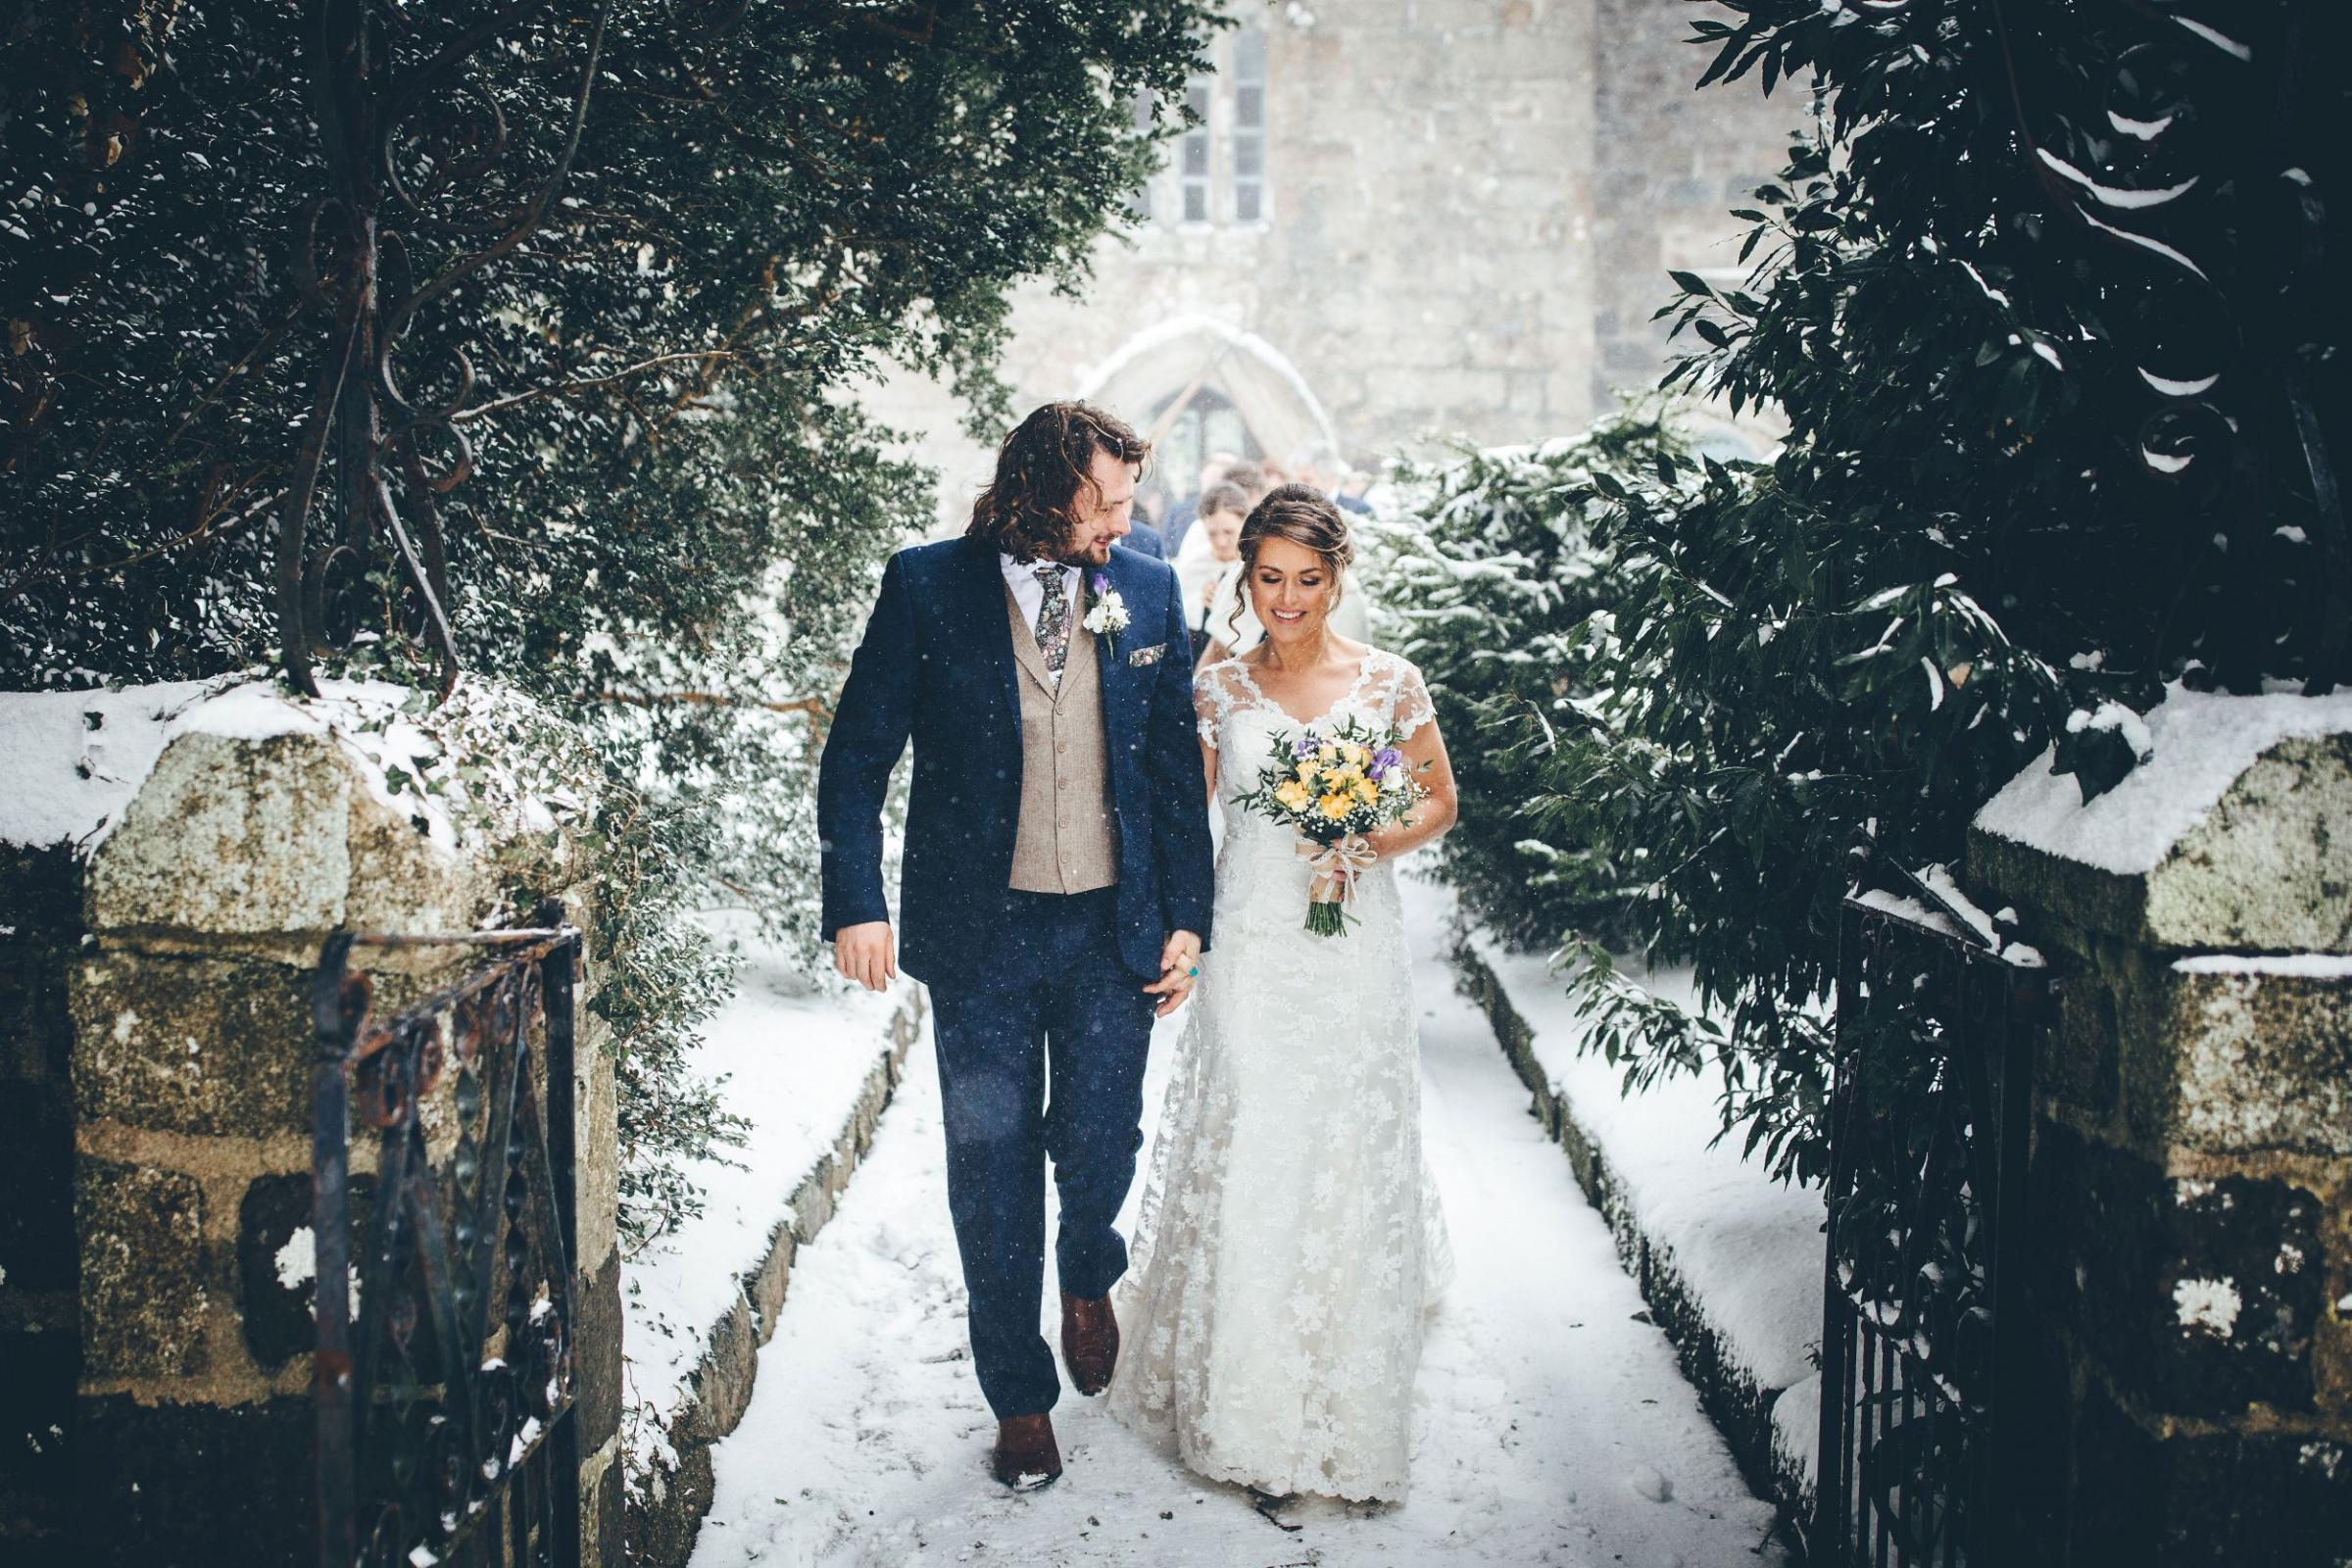 Sam and Katie leave St Martin Church in the snow. Photos: Toby Lowe Photography